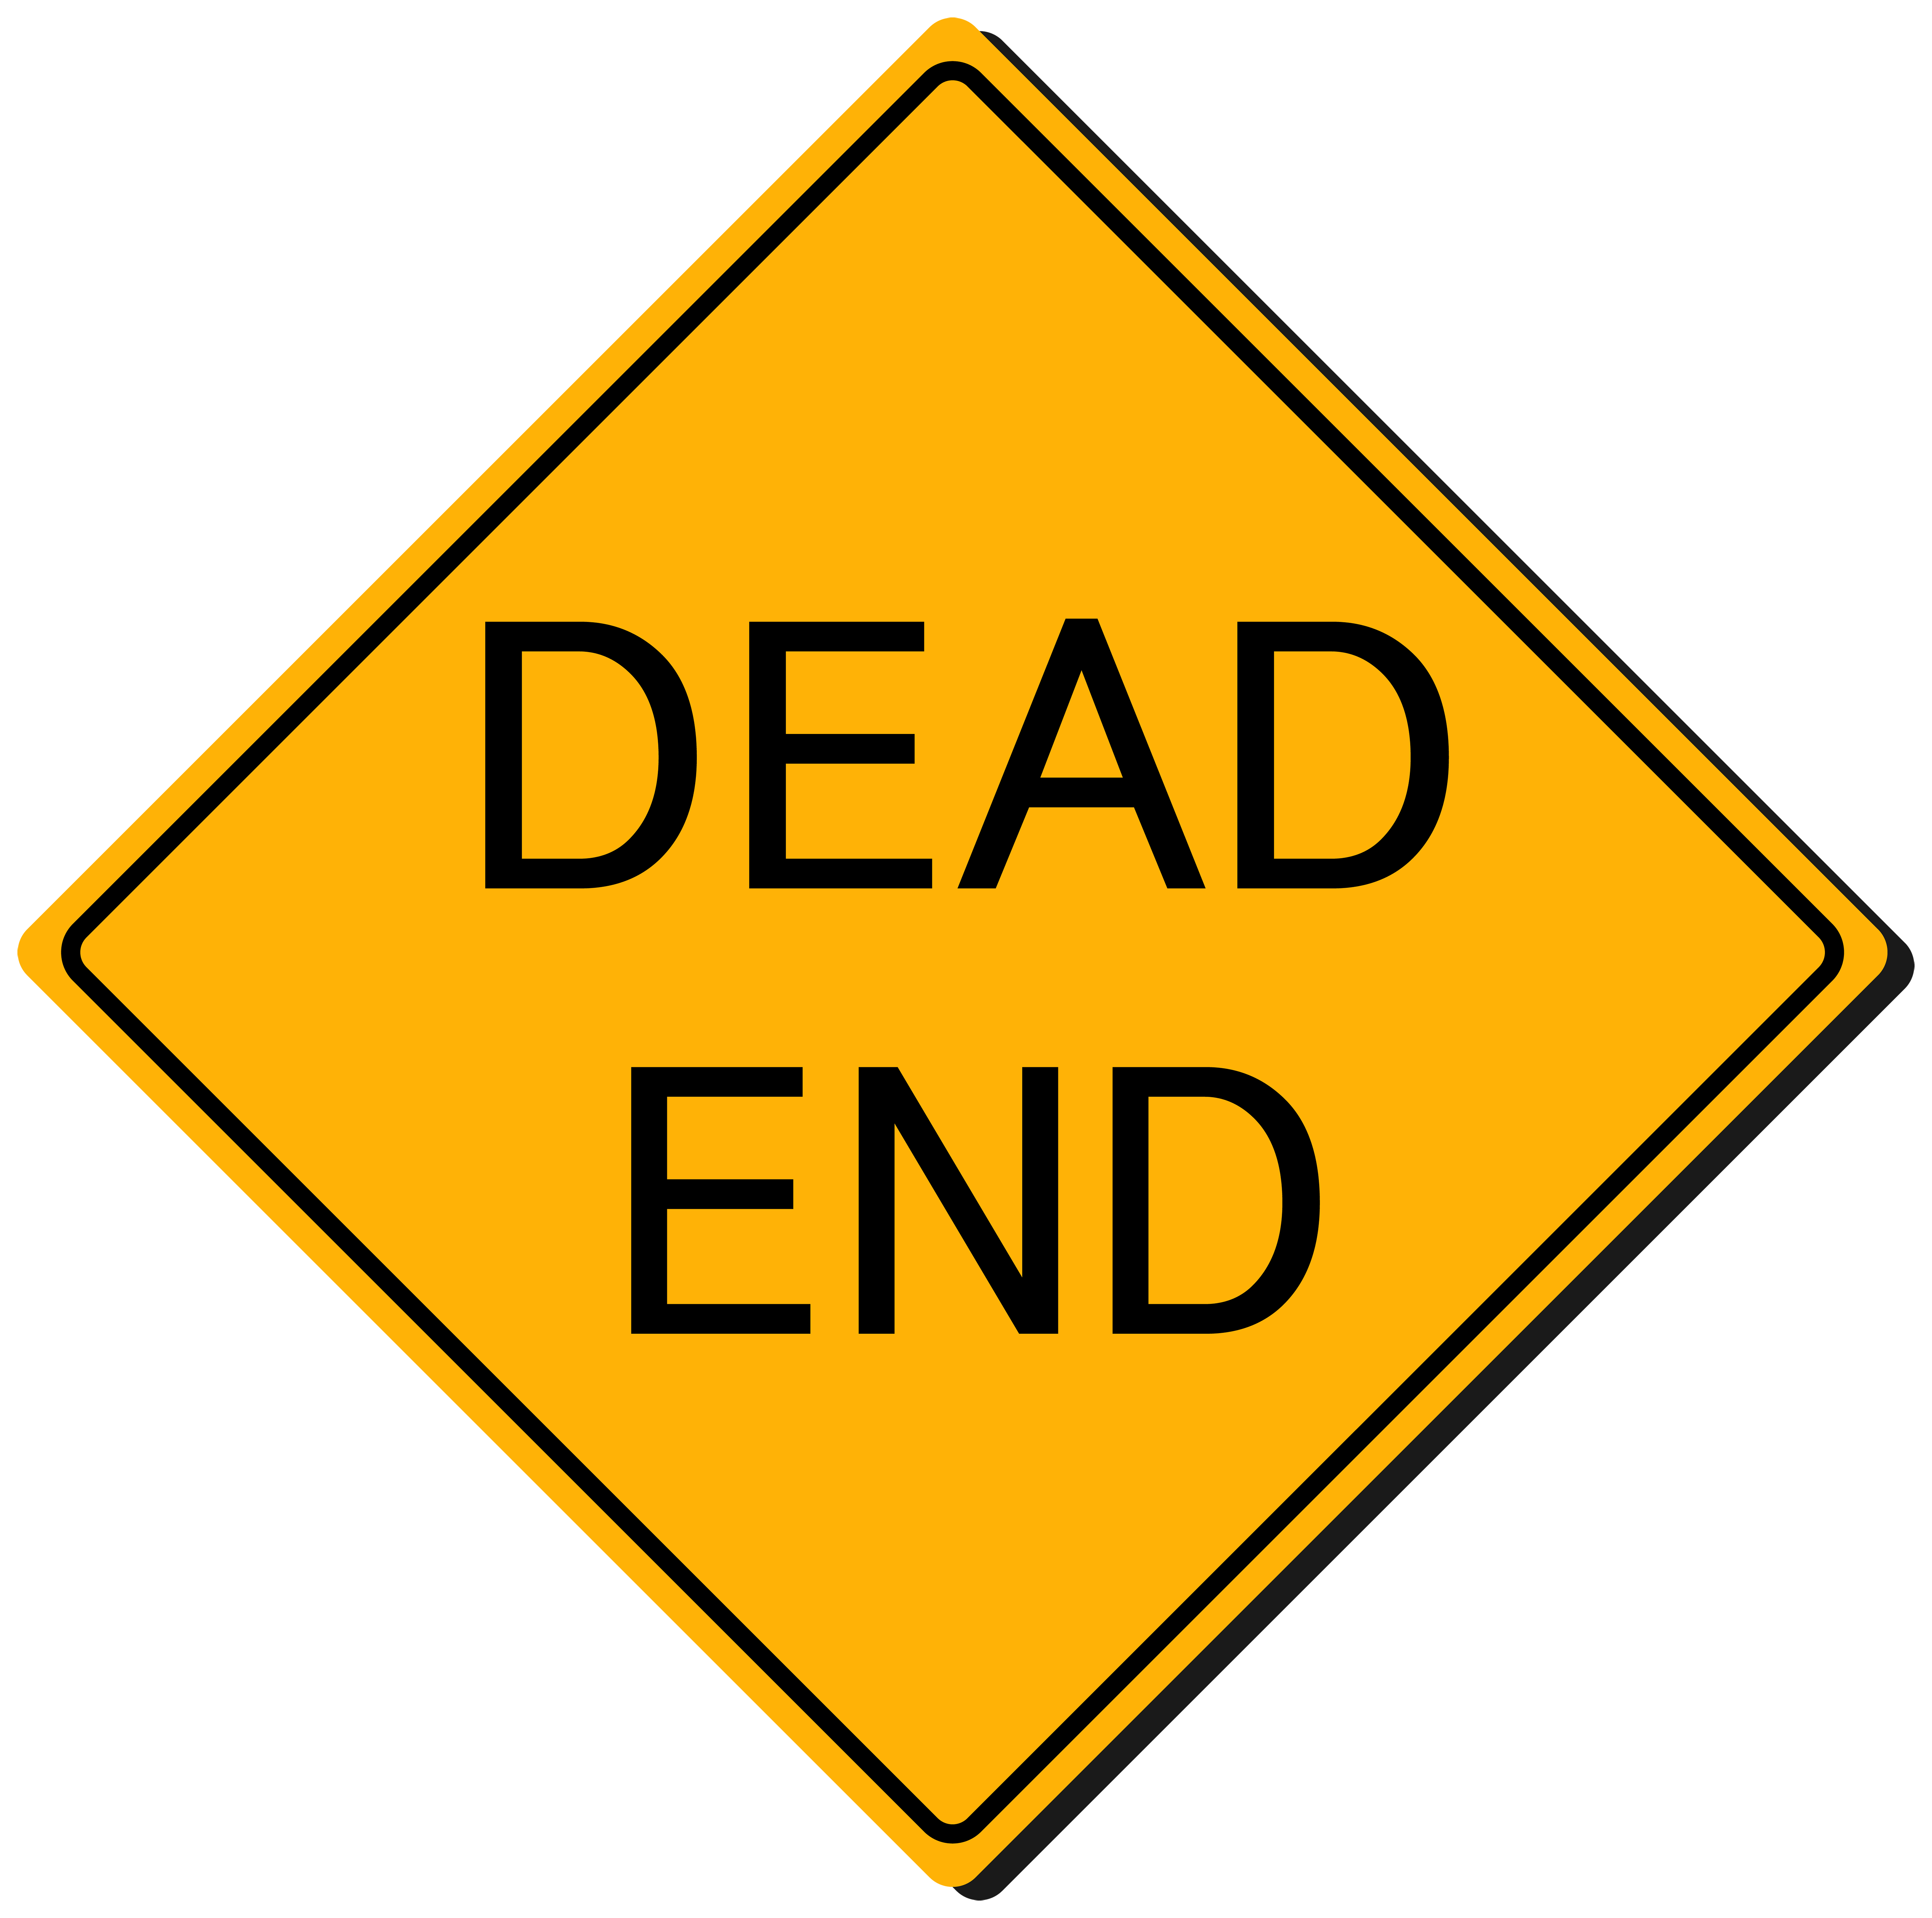 Dead sign png best. The end clipart picture transparent library